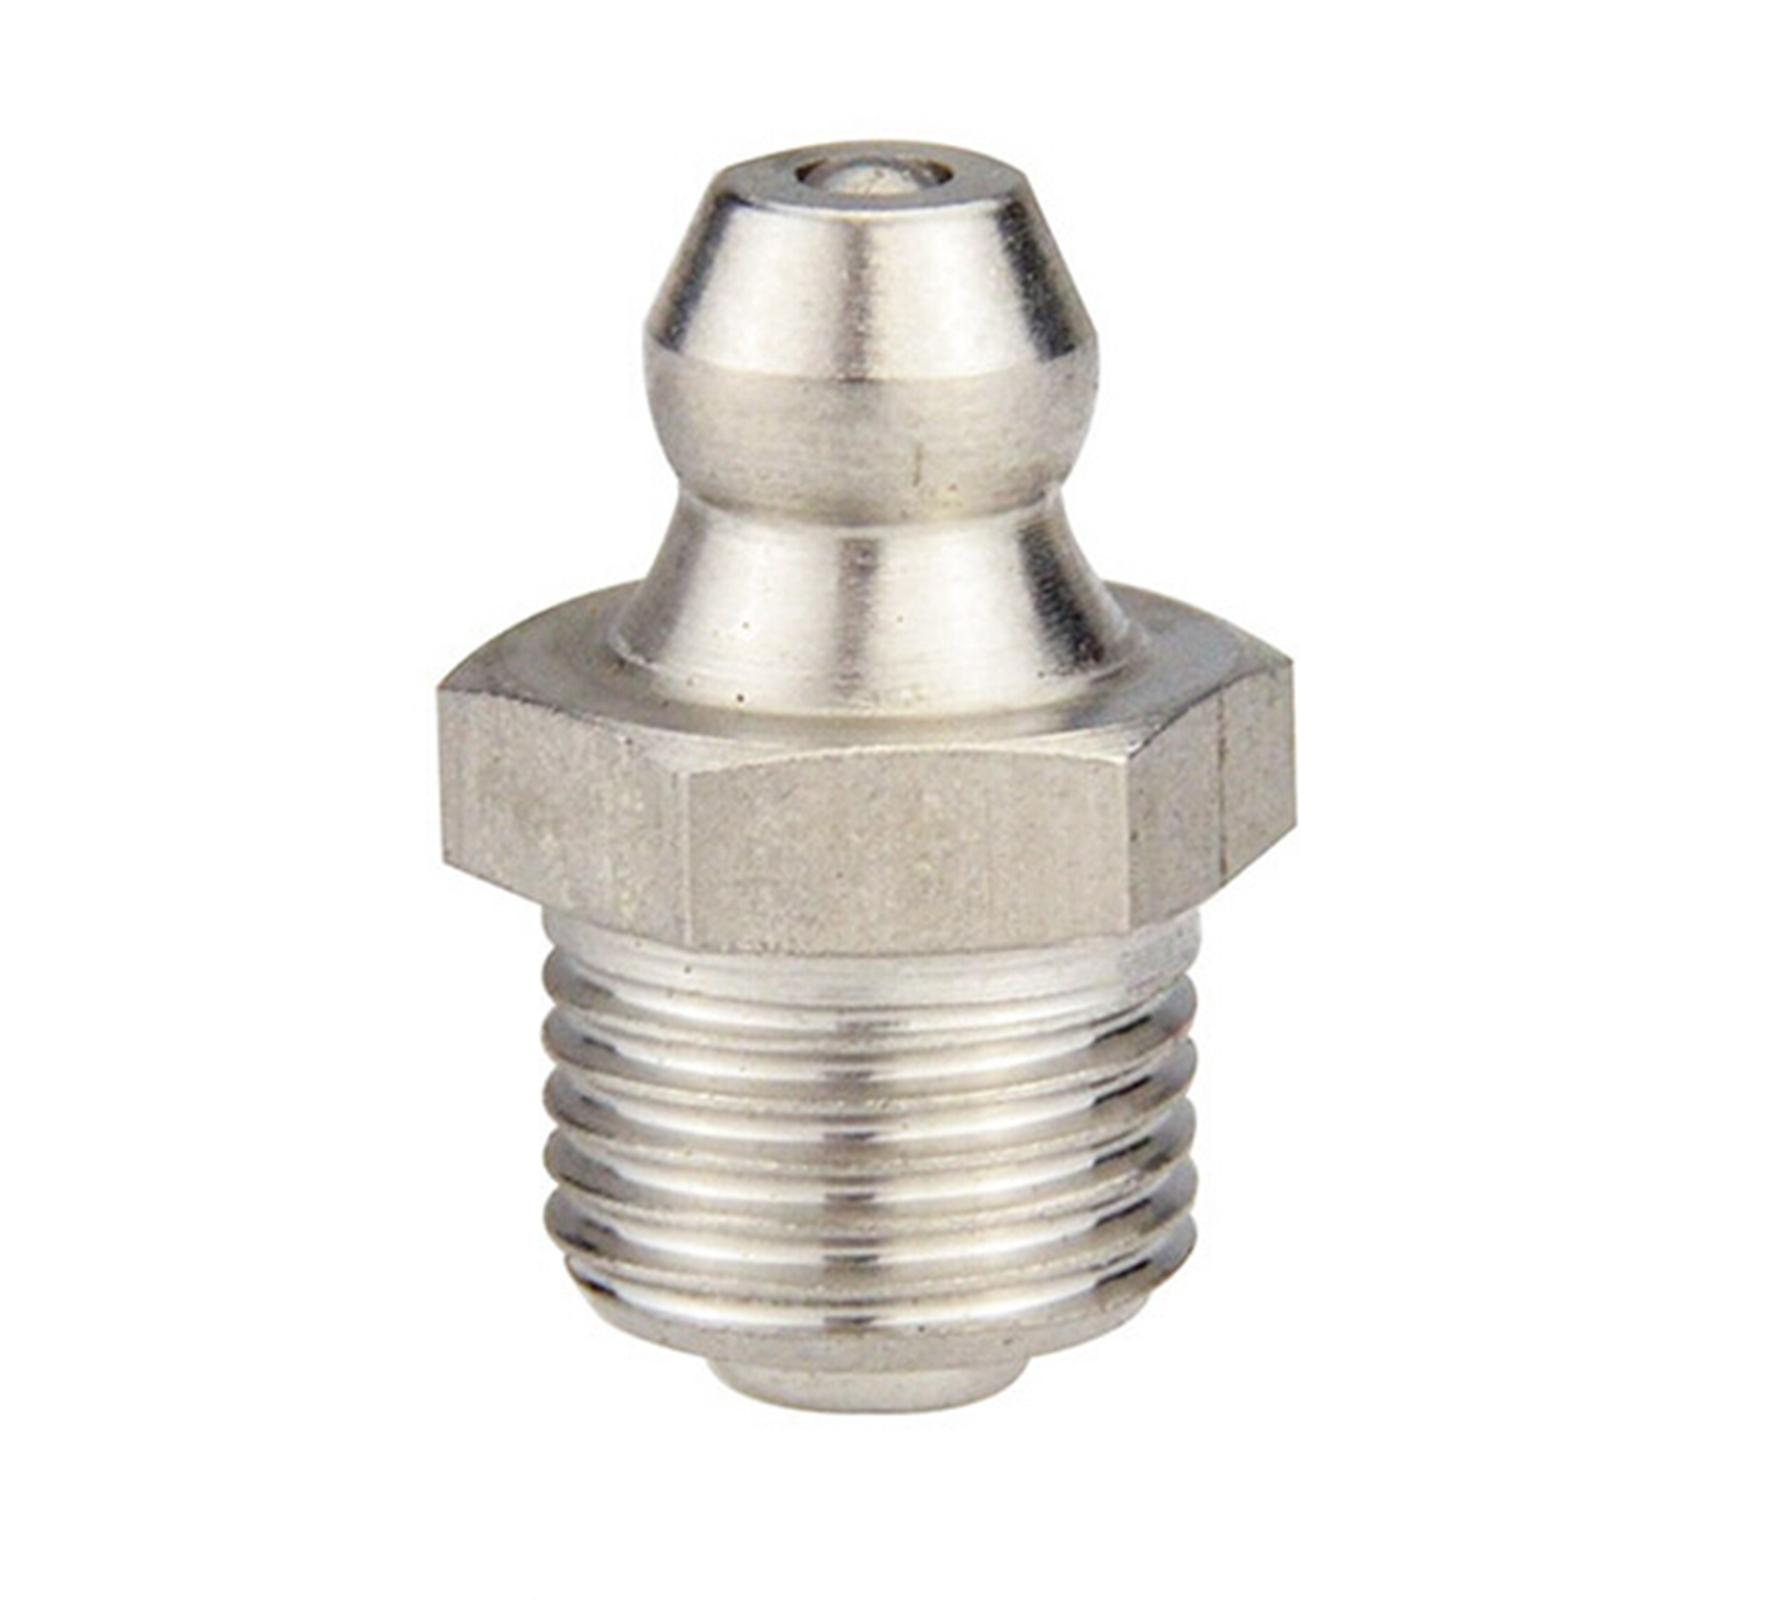 M6 X 0.75mm Metric Male Stainless Steel Grease Zerk Nipple Fitting For Grease Gun